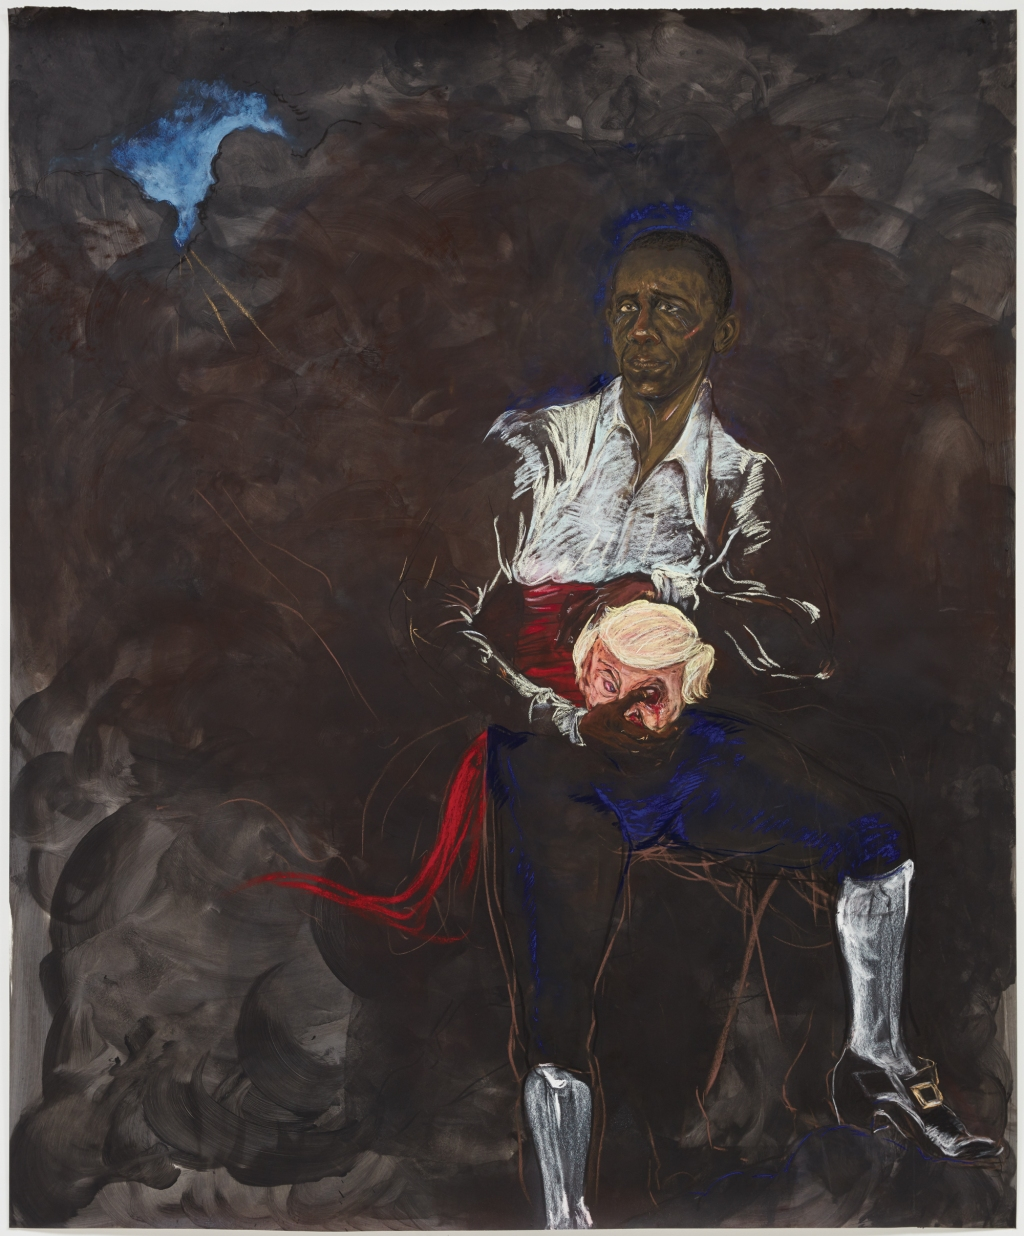 """Kara Walker, 'Barack Obama as Othello """"The Moor"""" with the Severed Head of Iago in a New and Revised Ending by Kara E. Walker', 2019."""